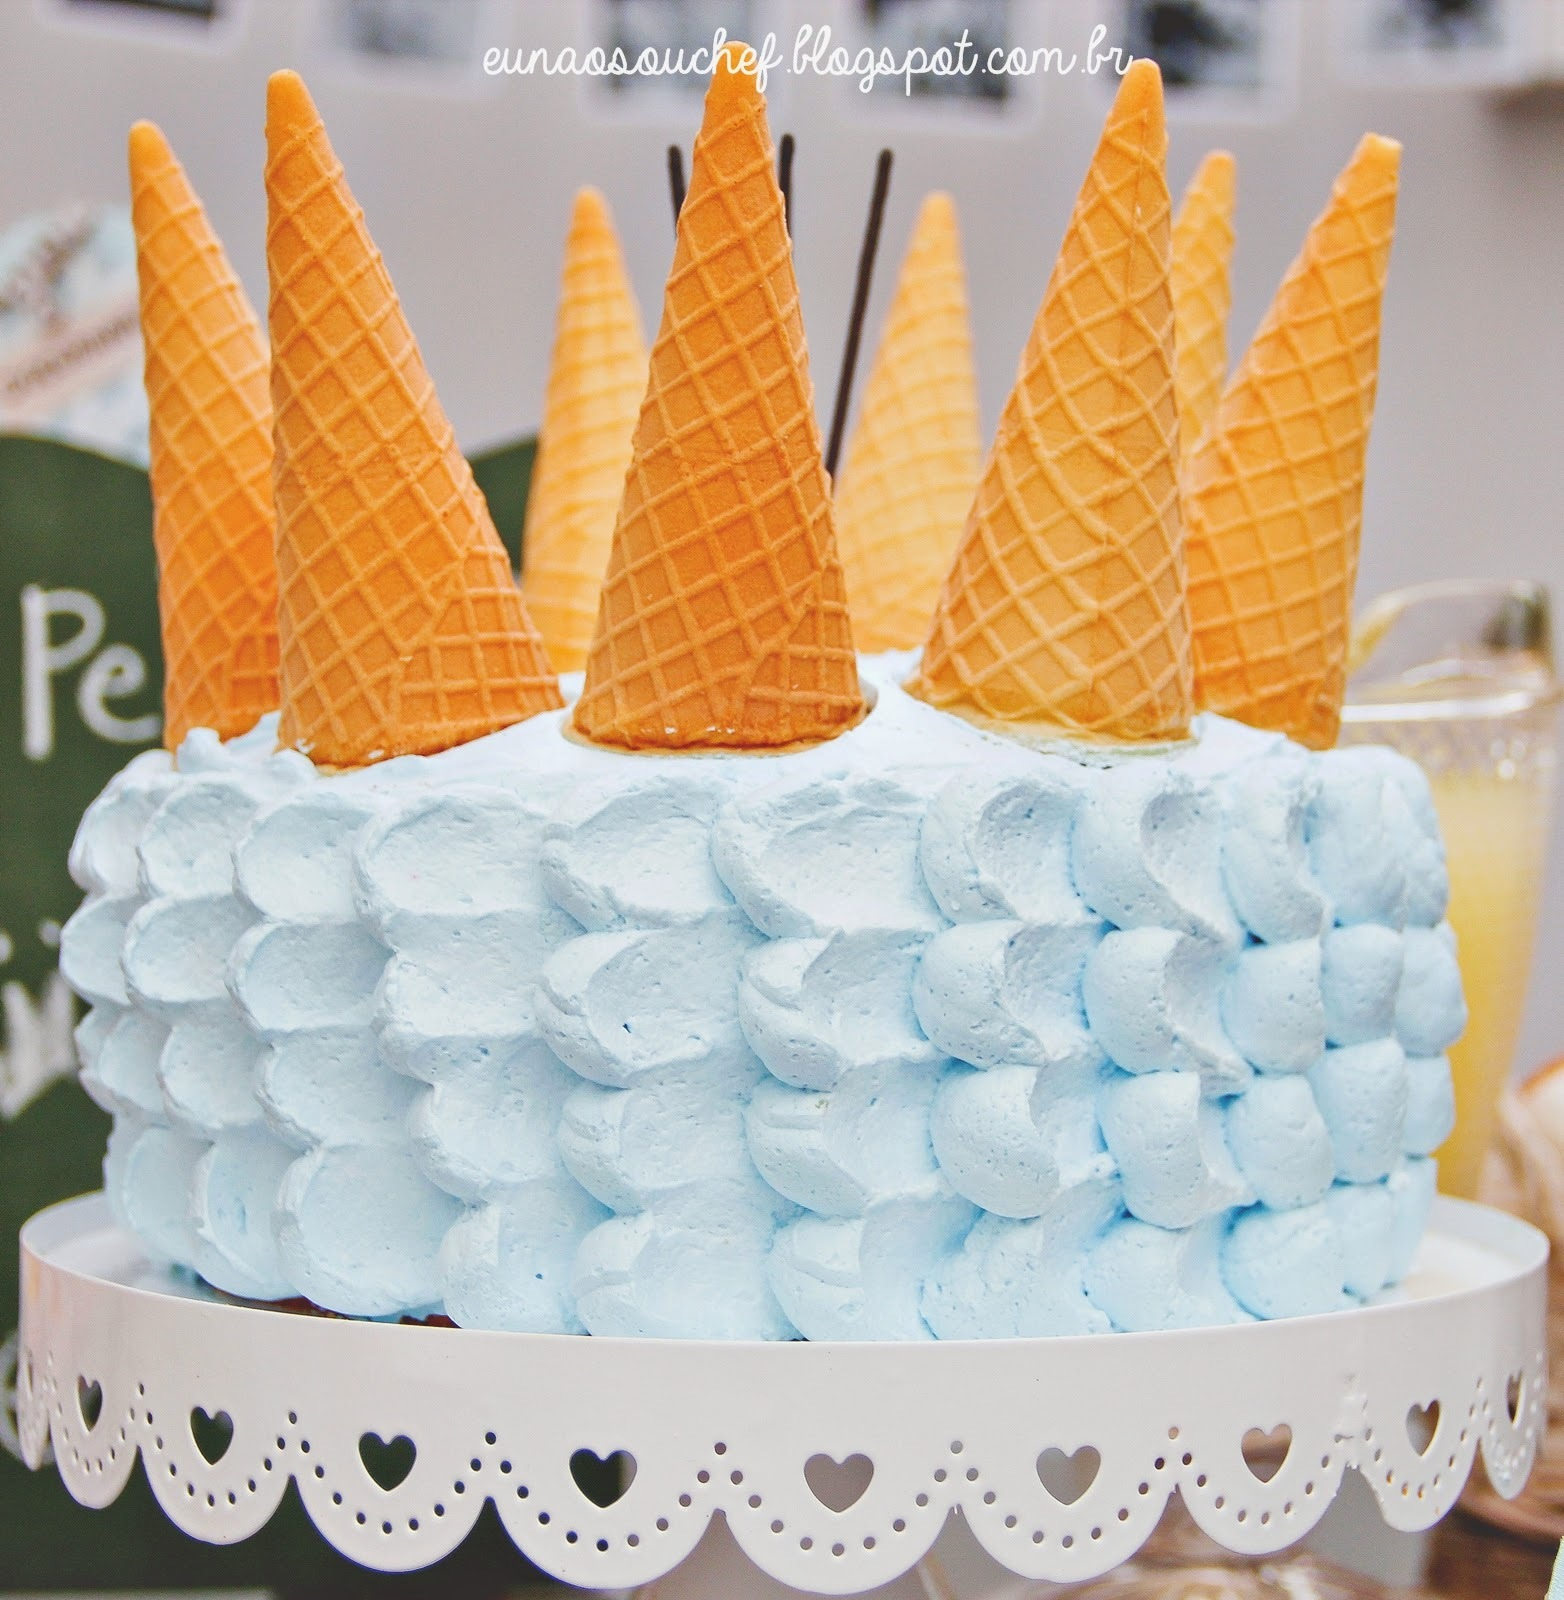 como decorar bolo de casamento com chantilly